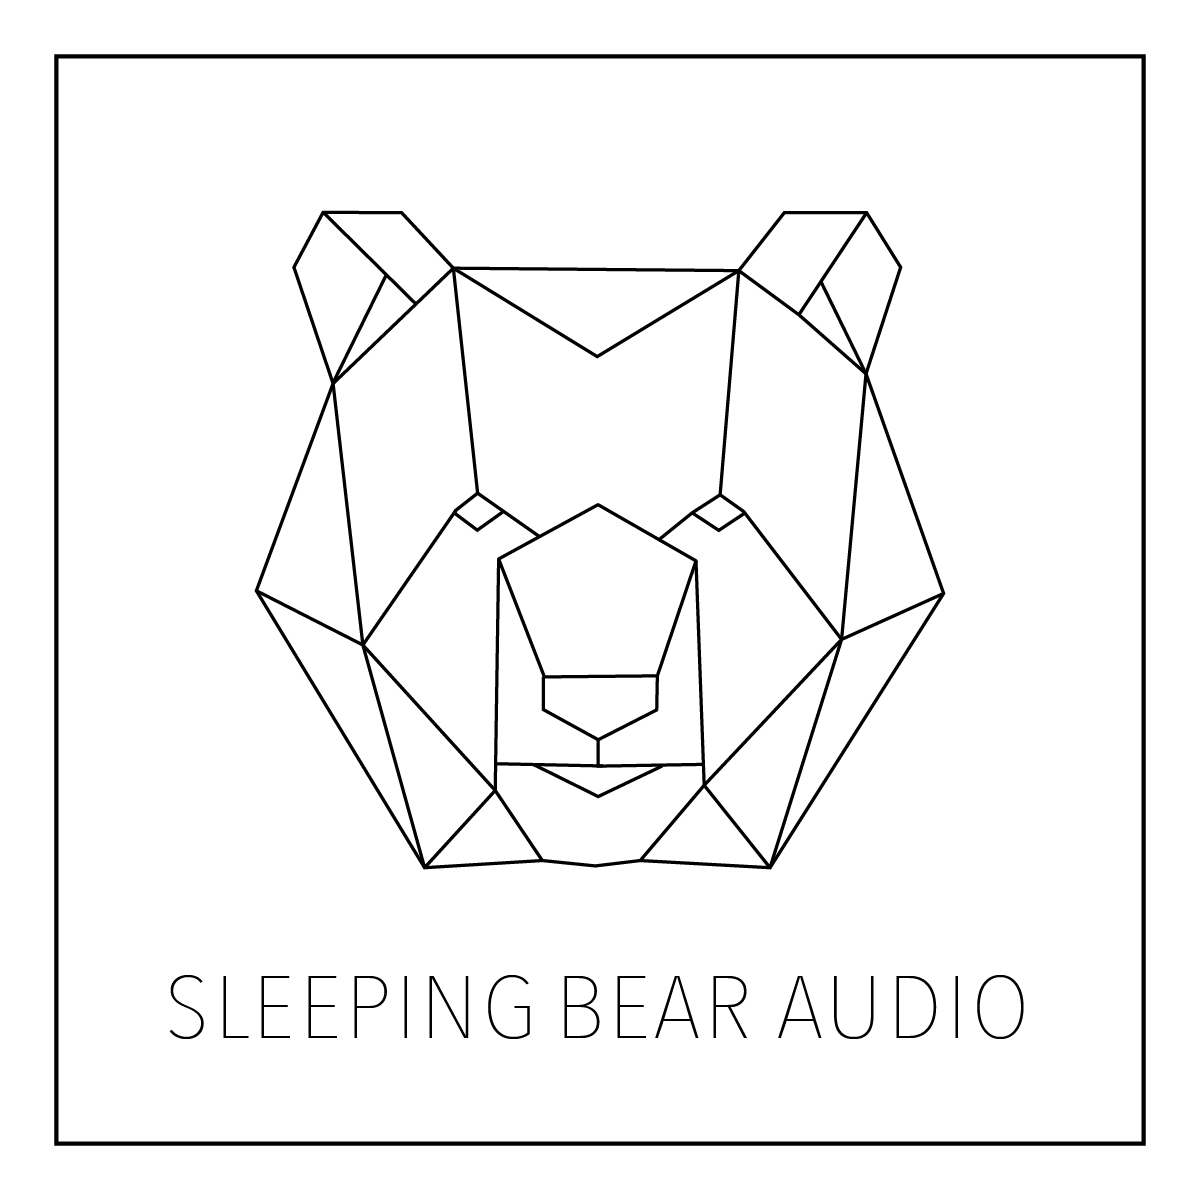 Jarrett Pryzgoda | Sleeping Bear Audio primary image